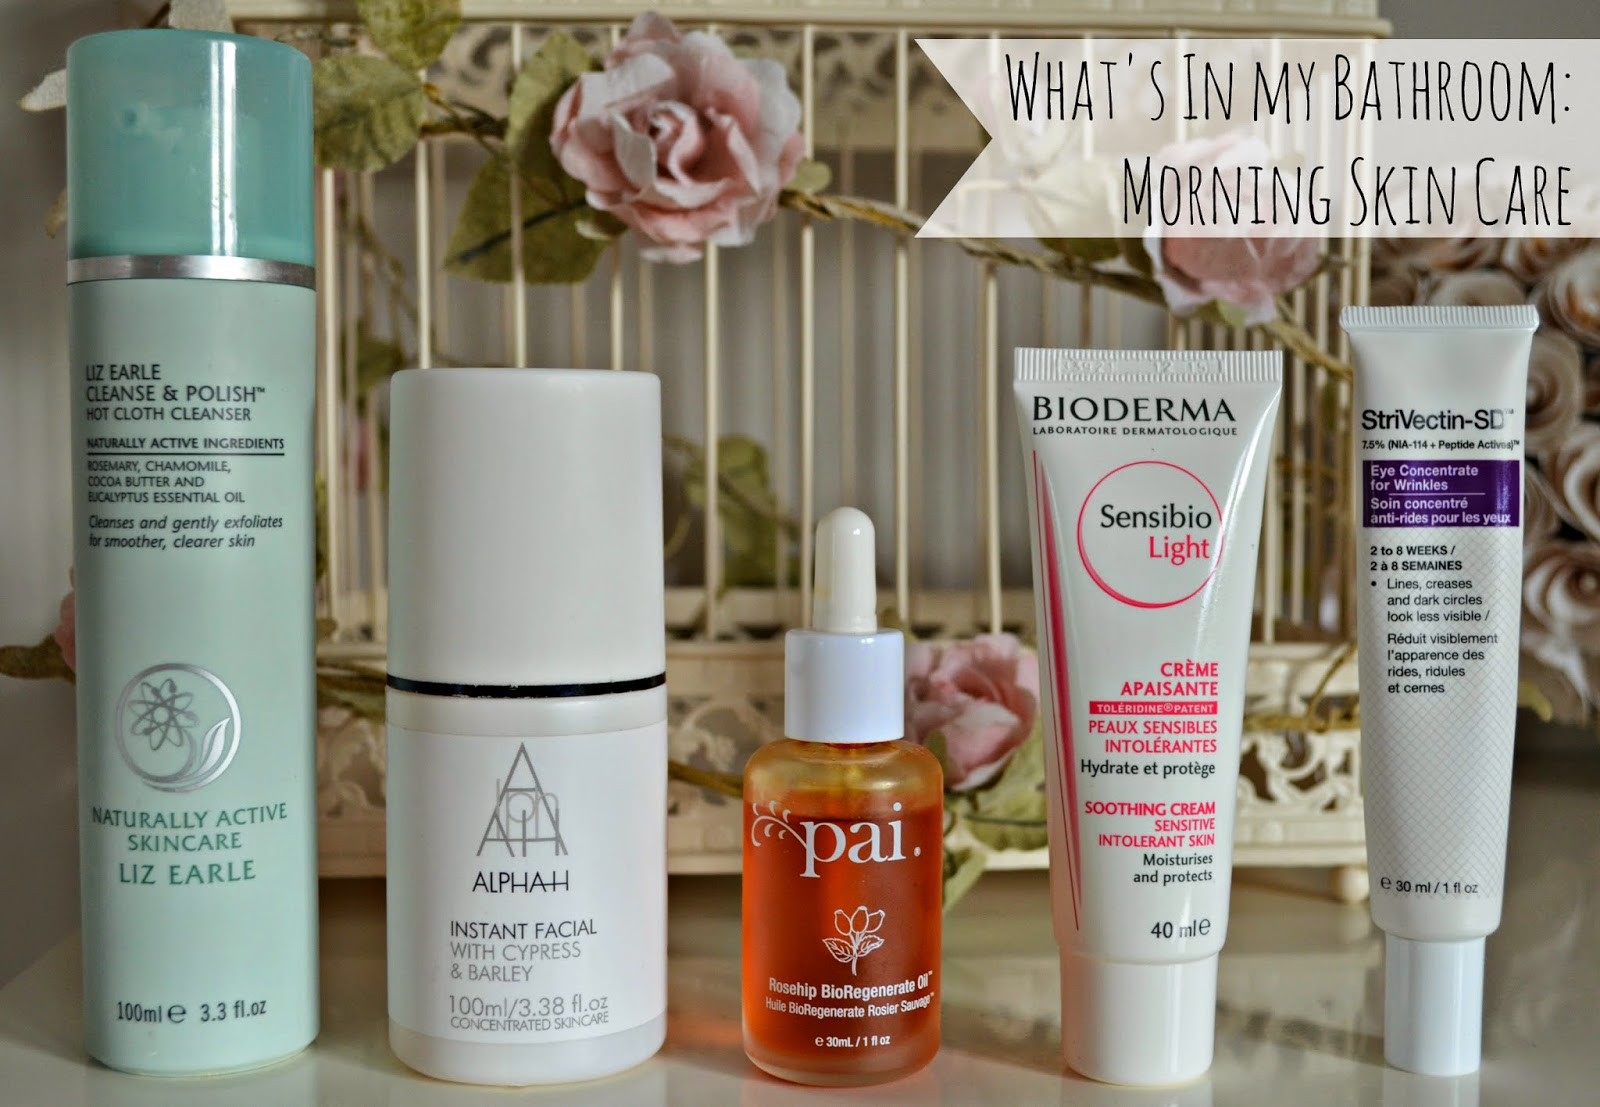 Liz Earl Cleanse and polish, Alpha H instant facial, Pai rosehip, bioderma sensibio light, StriVectin SD